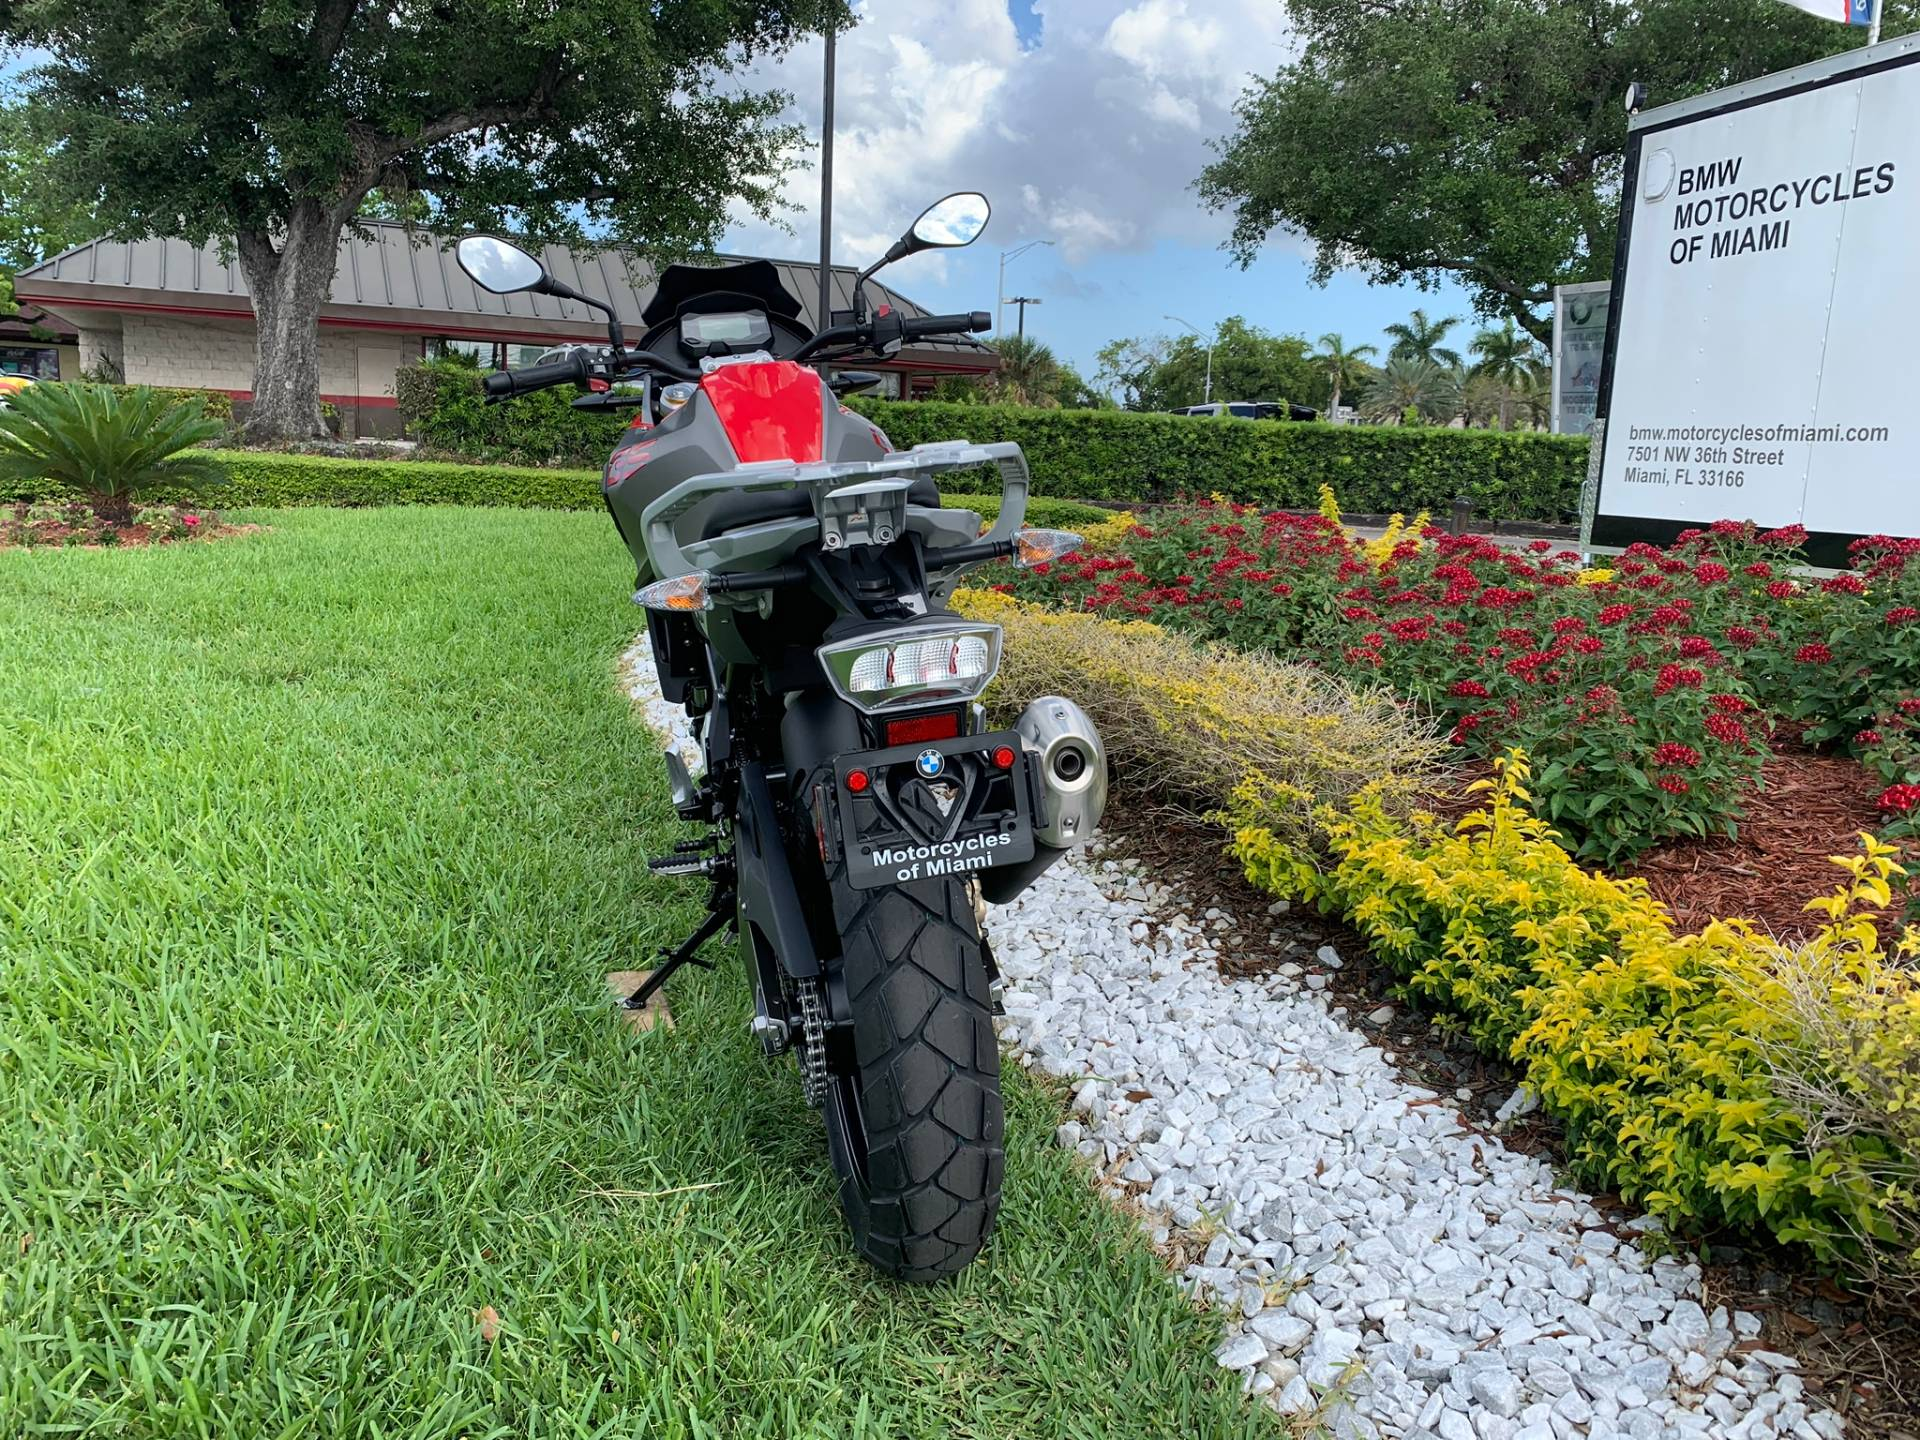 New 2019 BMW G 310 GS for sale, BMW G 310GS for sale, BMW Motorcycle GS, new BMW GS, Spirit of GS, BMW Motorcycles of Miami, Motorcycles of Miami, Motorcycles Miami, New Motorcycles, Used Motorcycles, pre-owned. #BMWMotorcyclesOfMiami #MotorcyclesOfMiami. - Photo 10